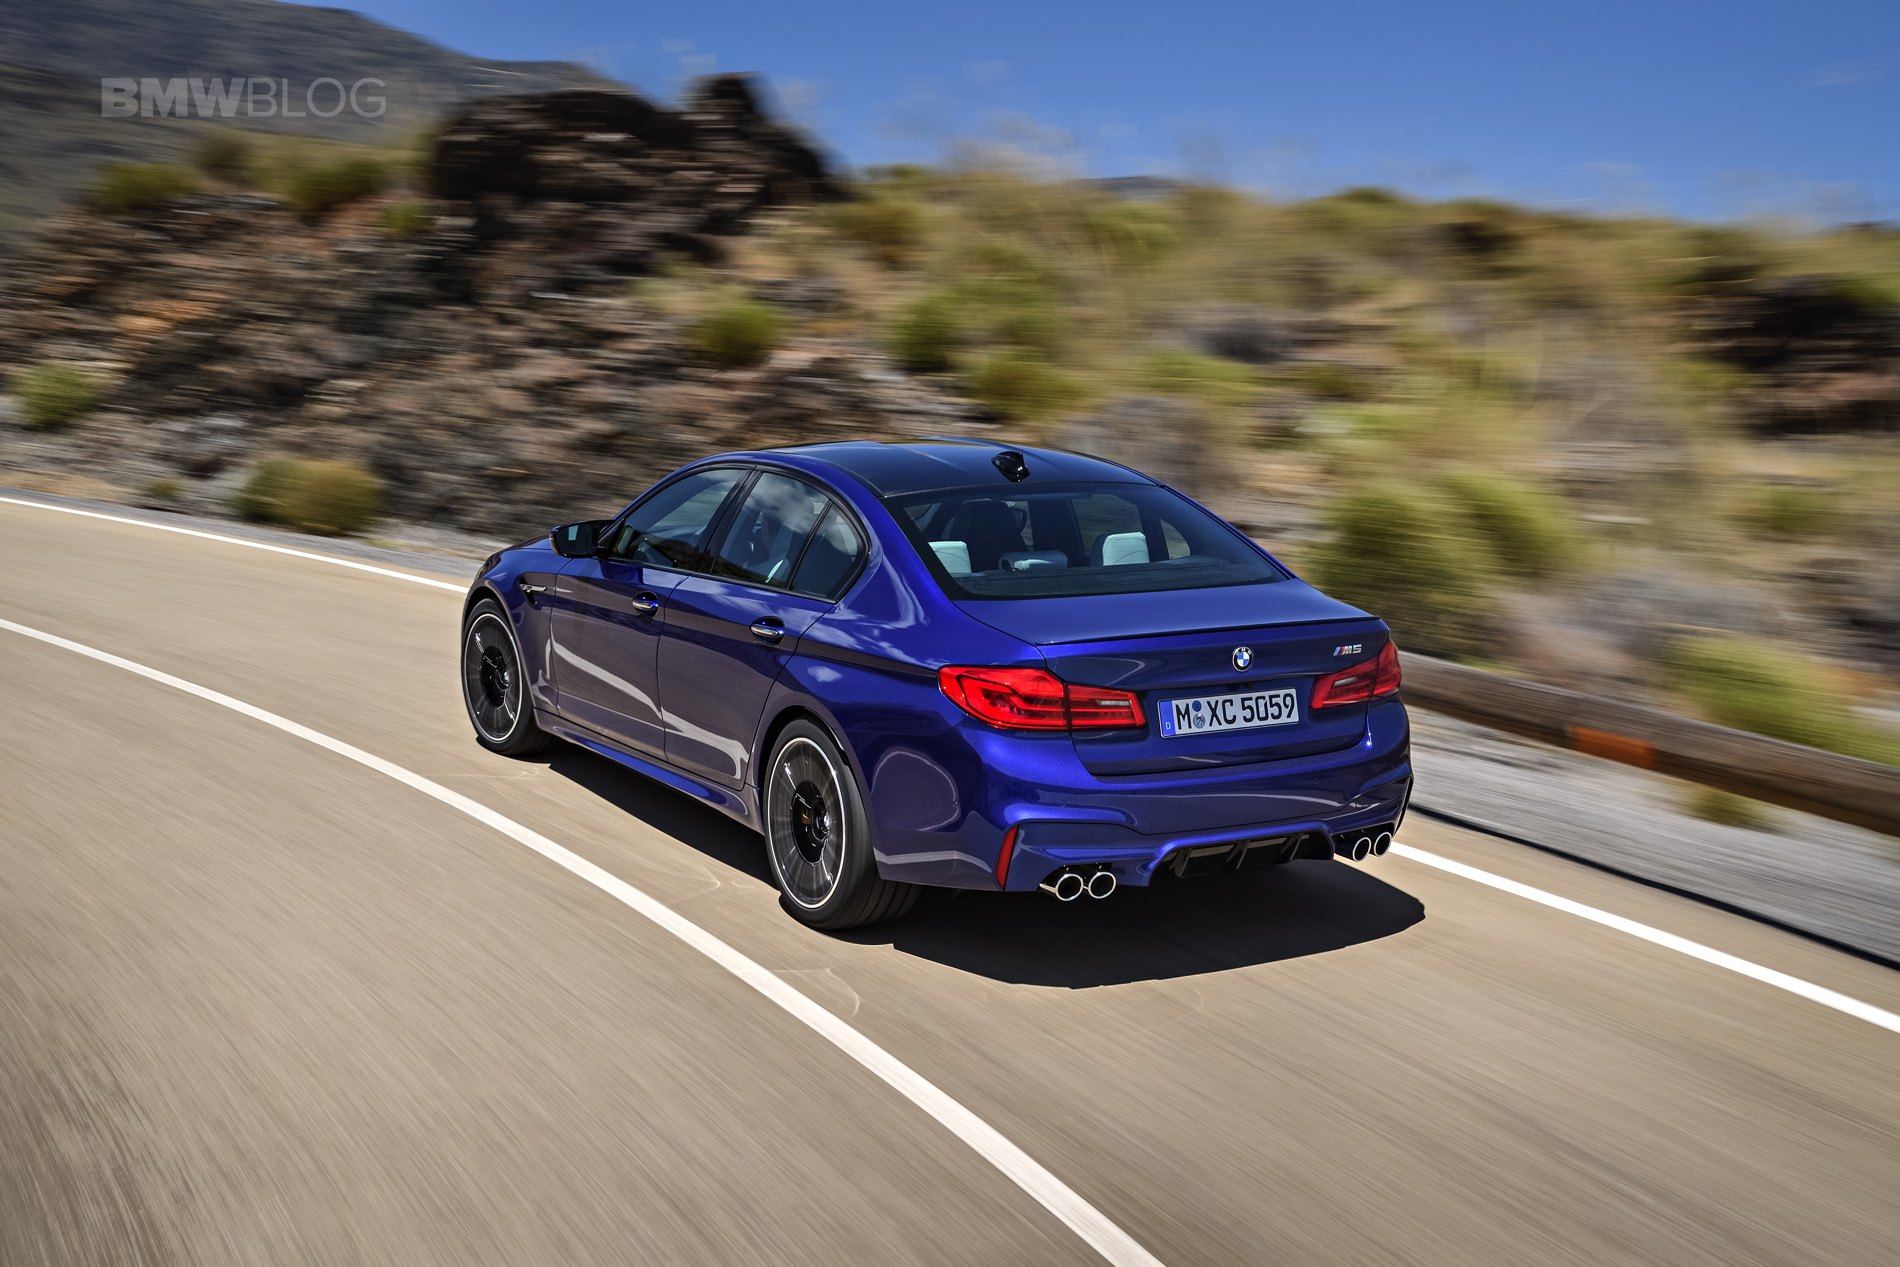 WORLD PREMIERE 2018 BMW M5 600 hp and AWD